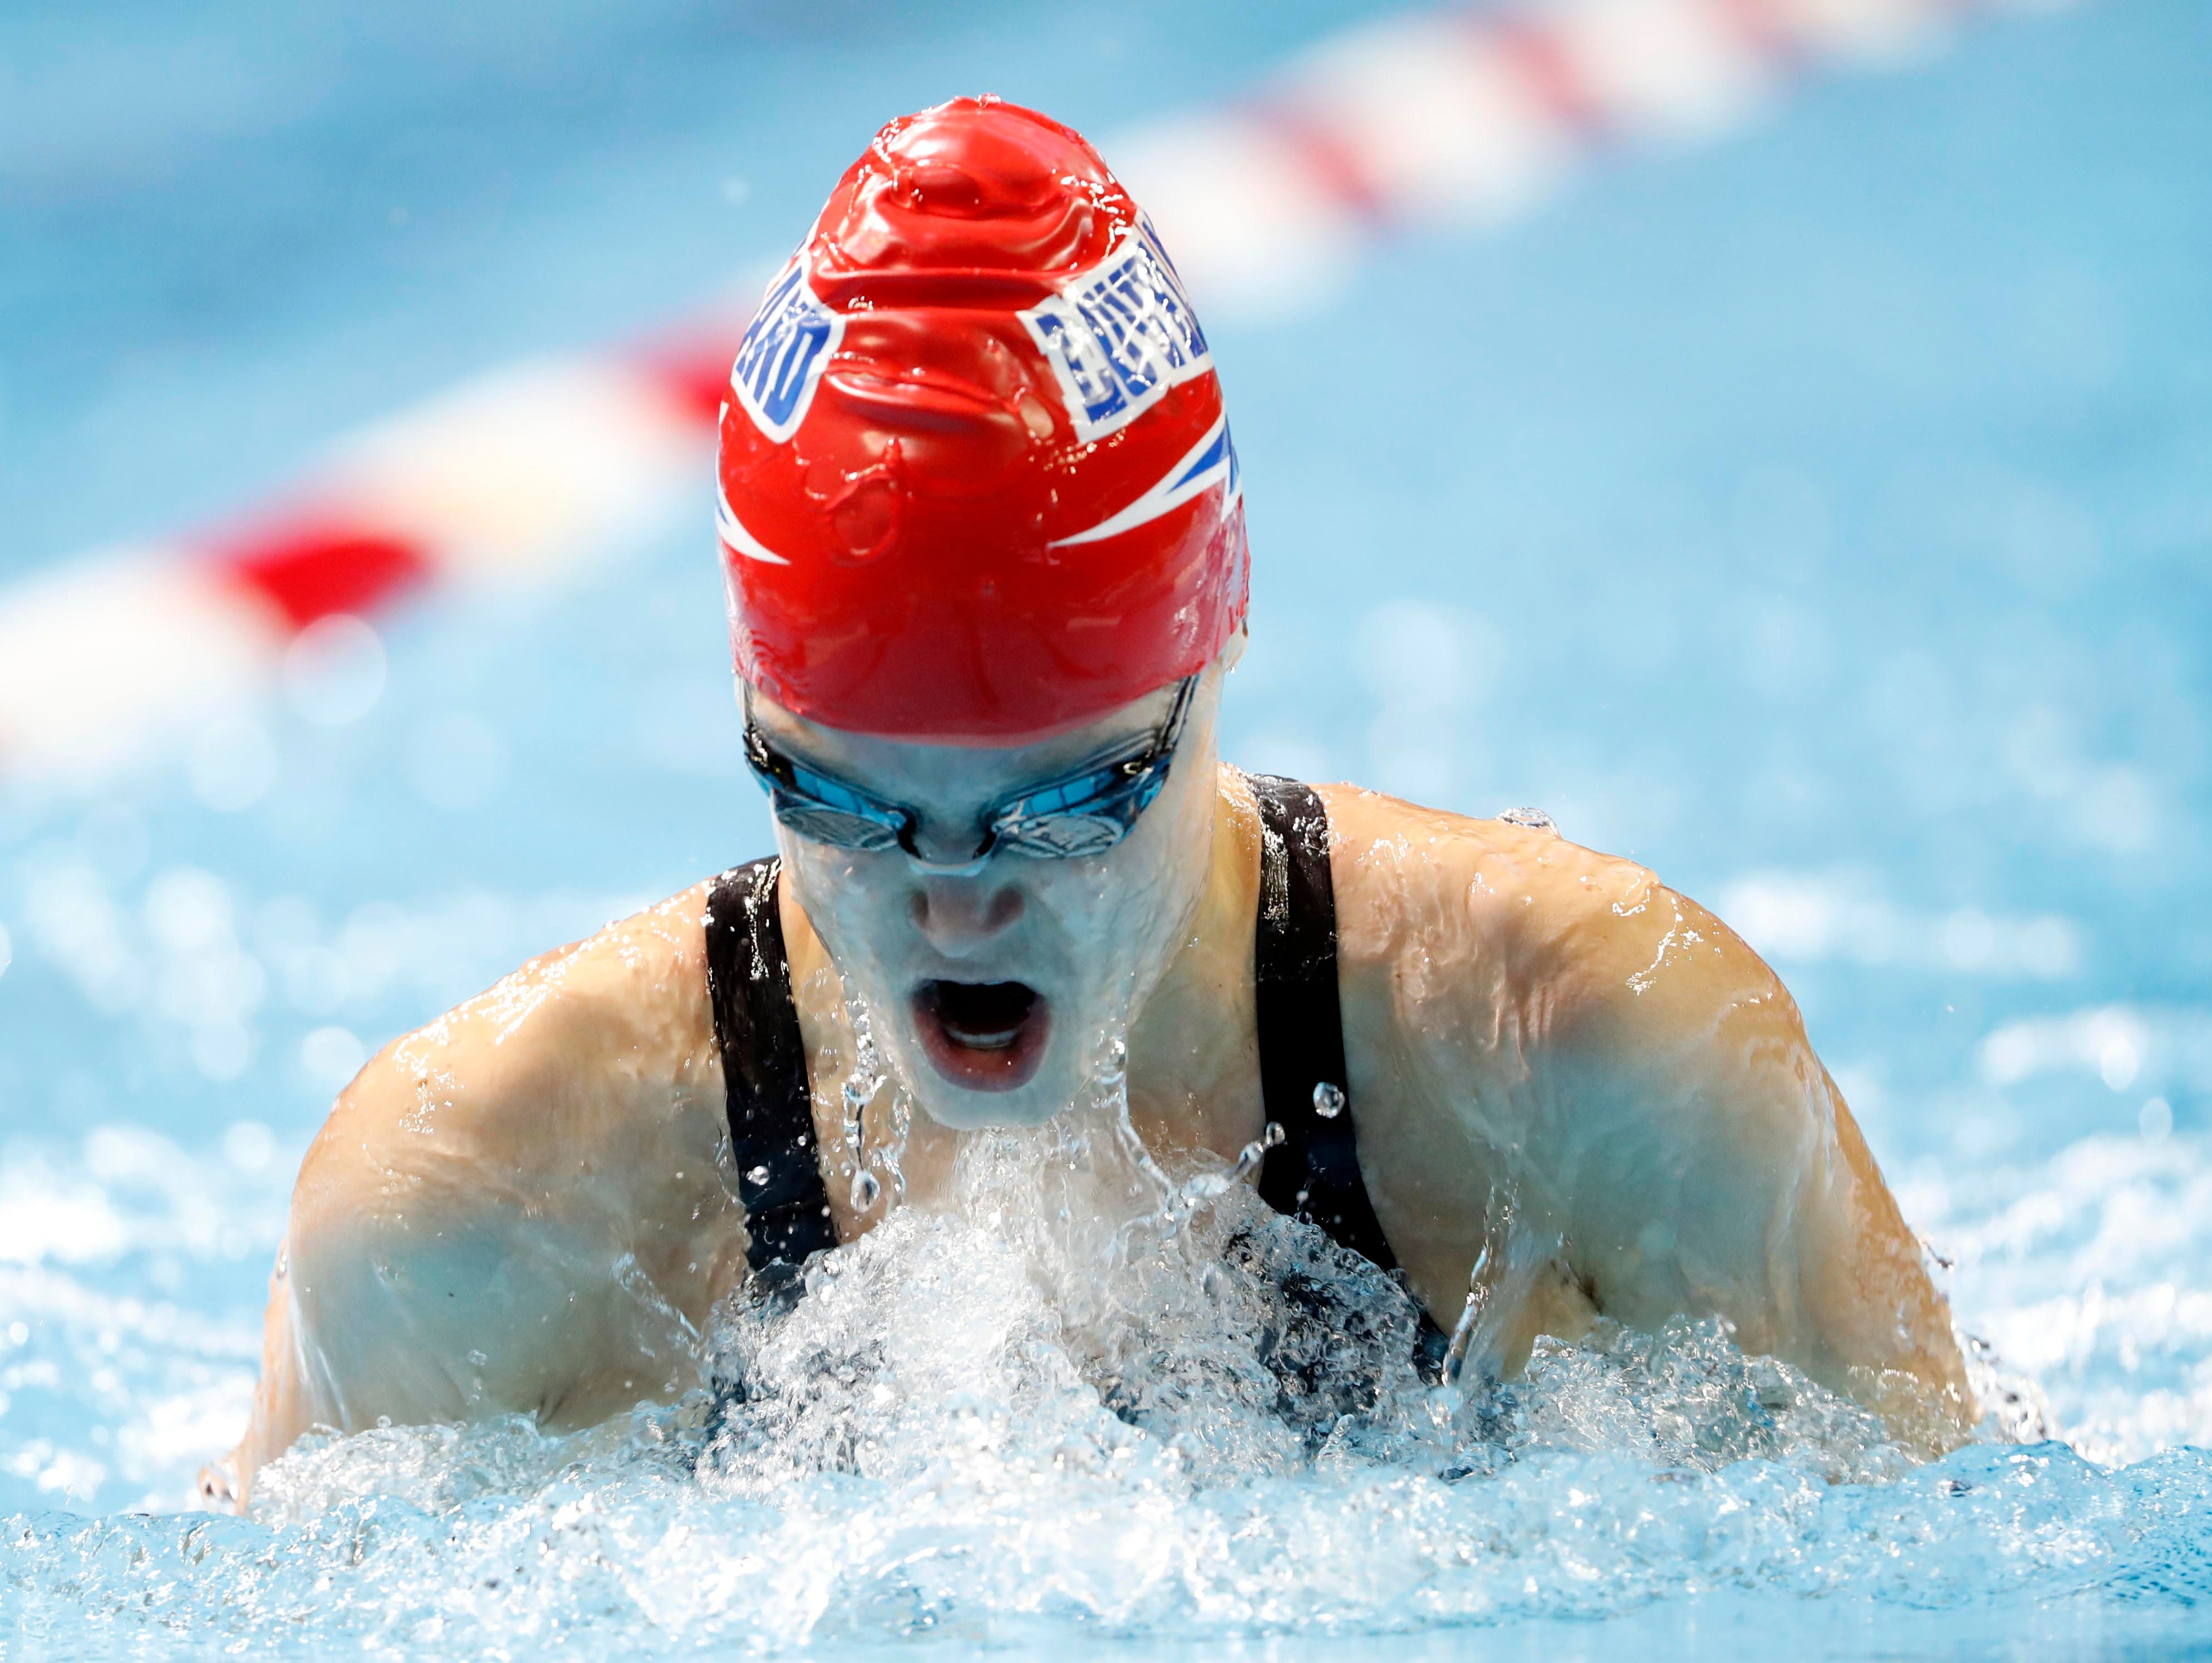 Windsor's Morgan Friesen swims during the women's 100 breaststroke preliminary heats in the U.S. Olympic swimming team trials at CenturyLink Center on Monday.